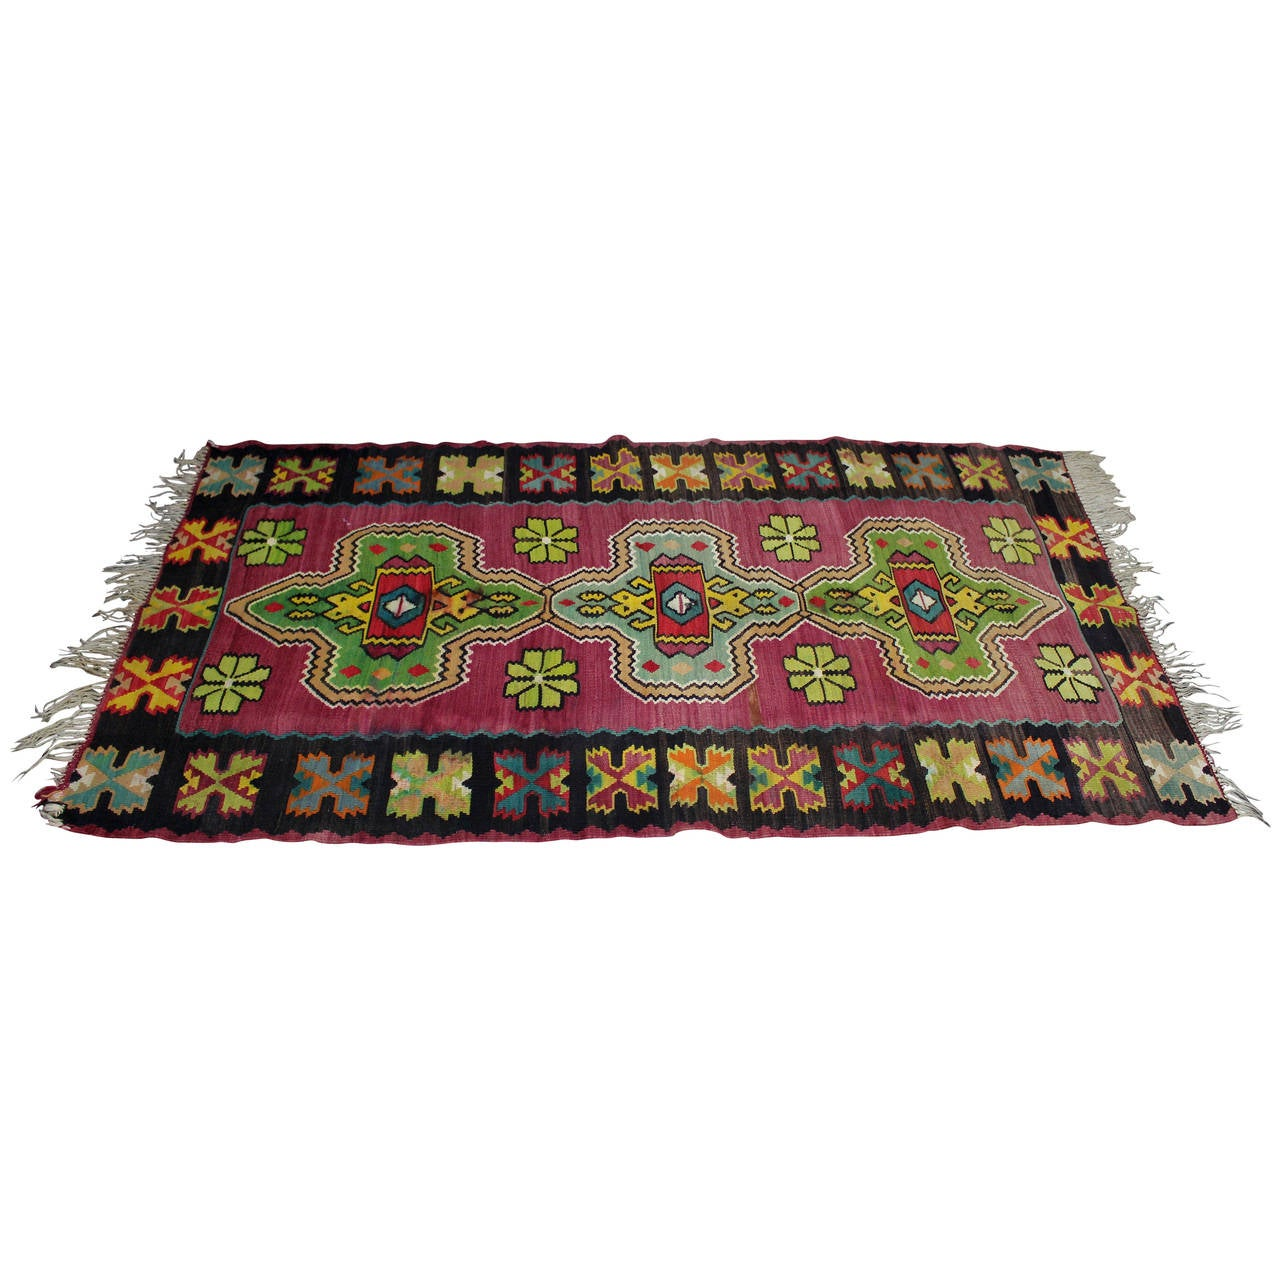 Antique Turkish Kilim from Bosnia For Sale